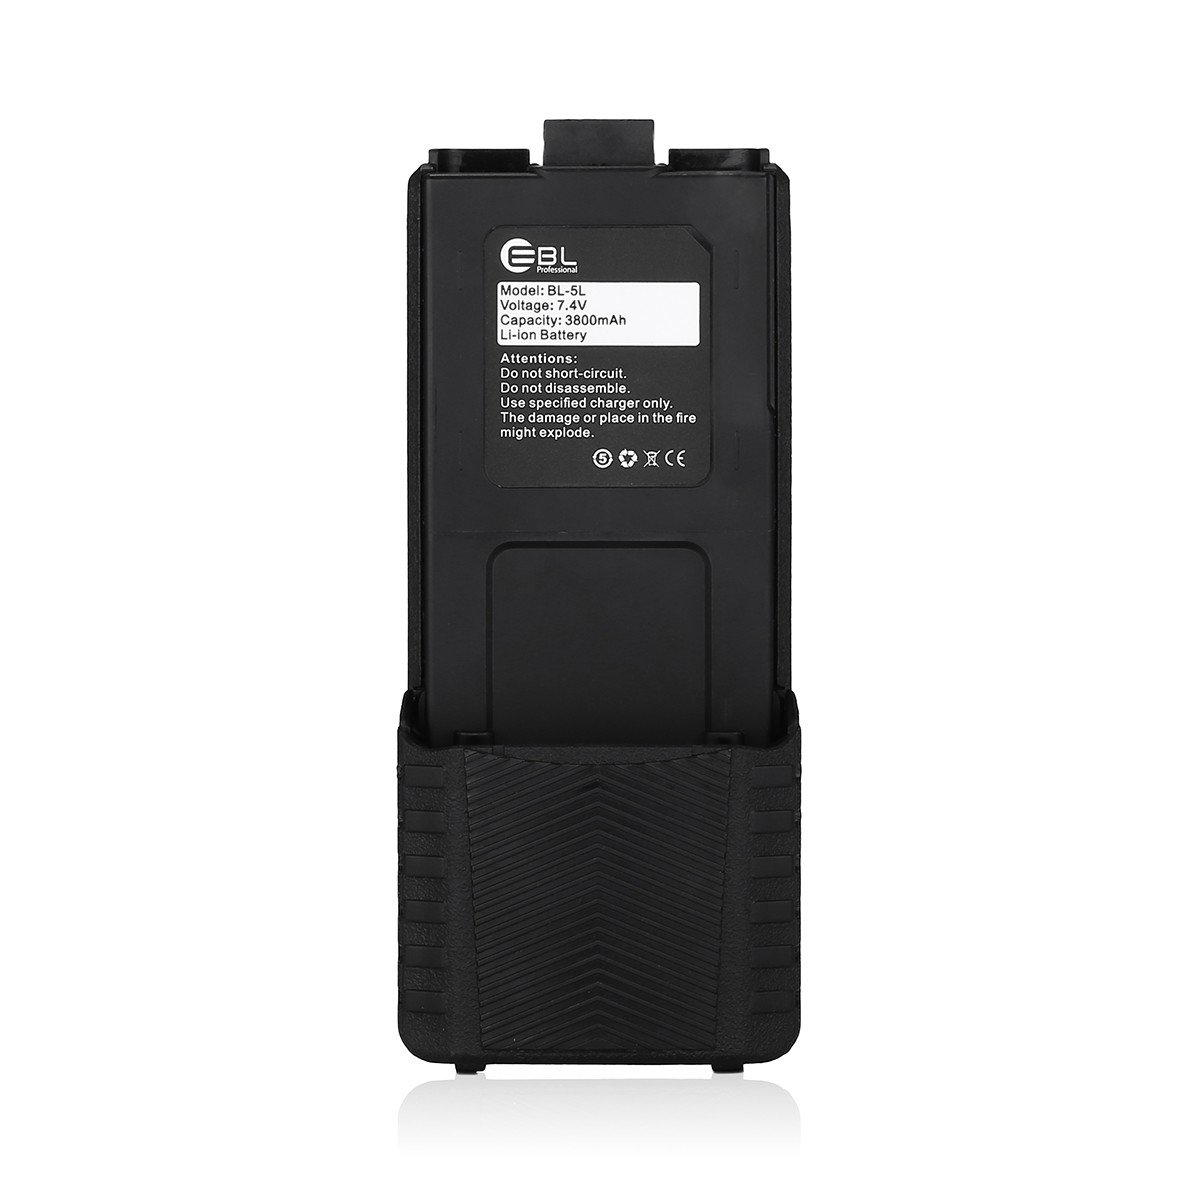 EBL BL-5L 3800mAh Li-ion Extended Battery Two-way Radio Batteries for Baofeng UV 5R UV-5R